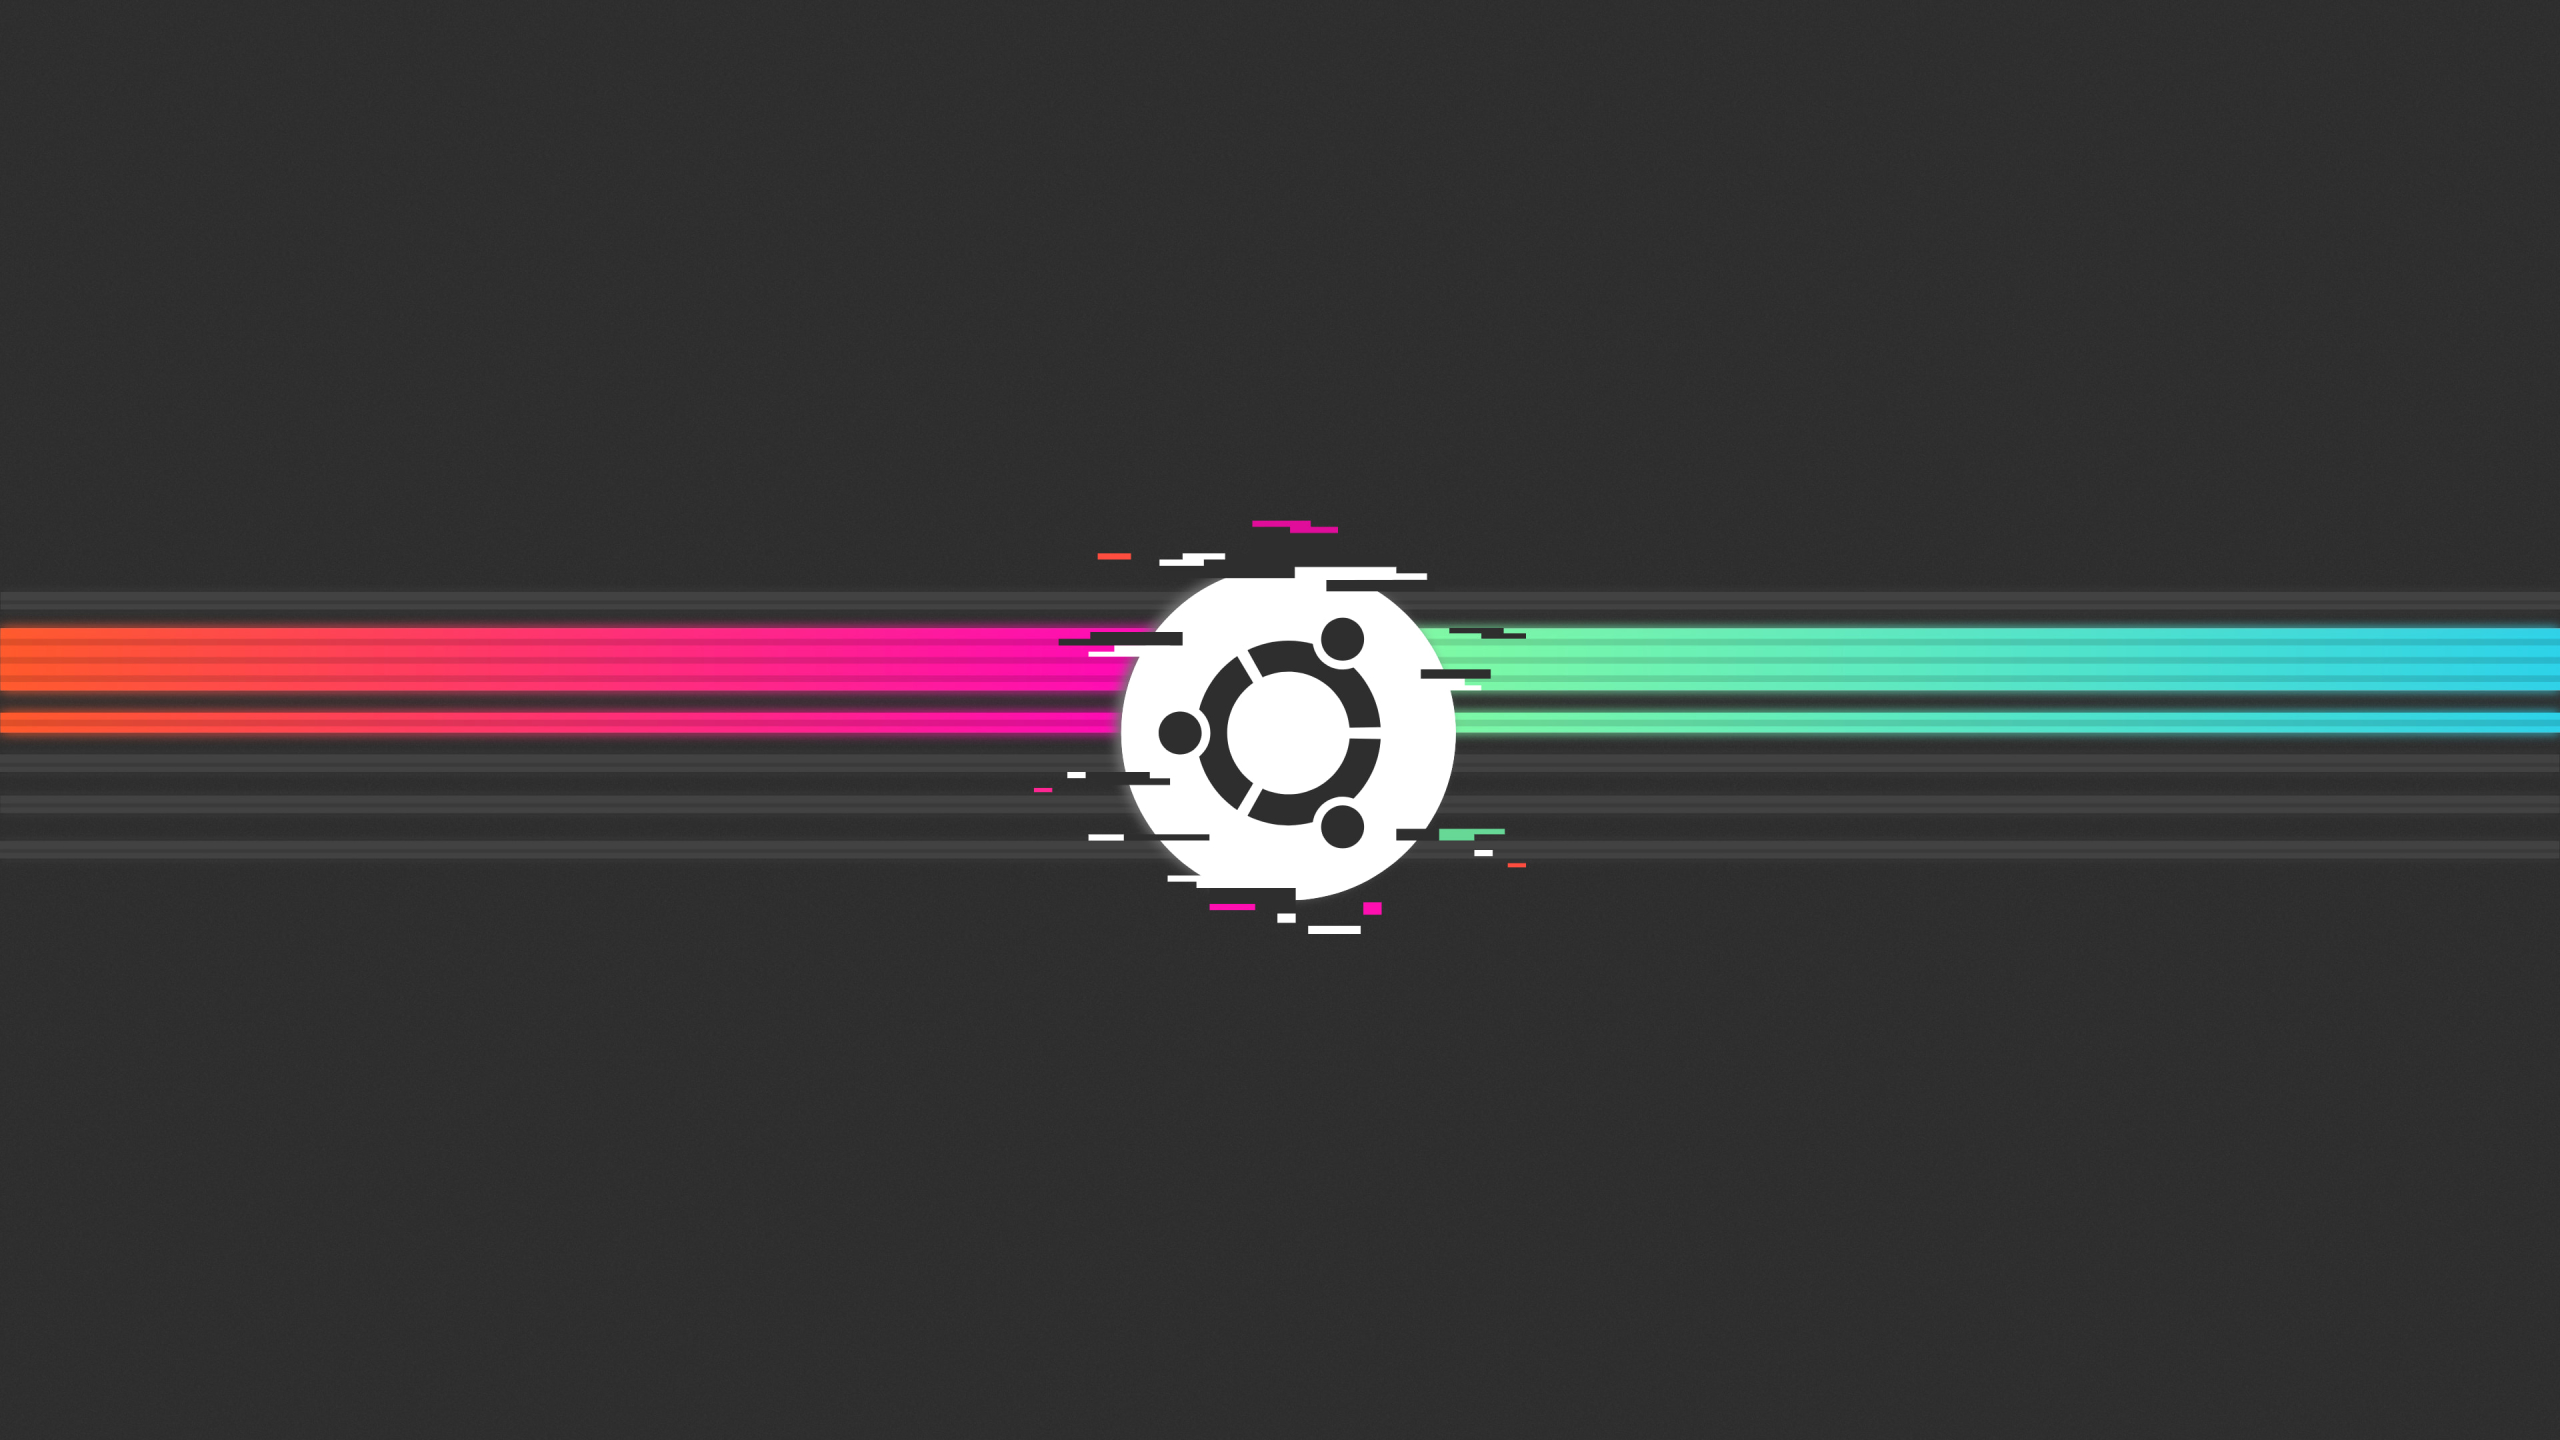 2560x1440 Ubuntu Glitch 1440p Resolution Wallpaper Hd Minimalist 4k Wallpapers Images Photos And Background